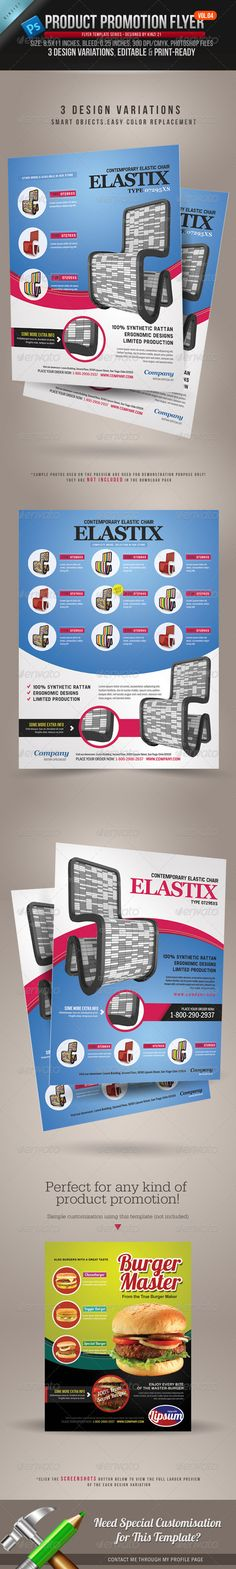 Product Promotion Flyer Vol.04